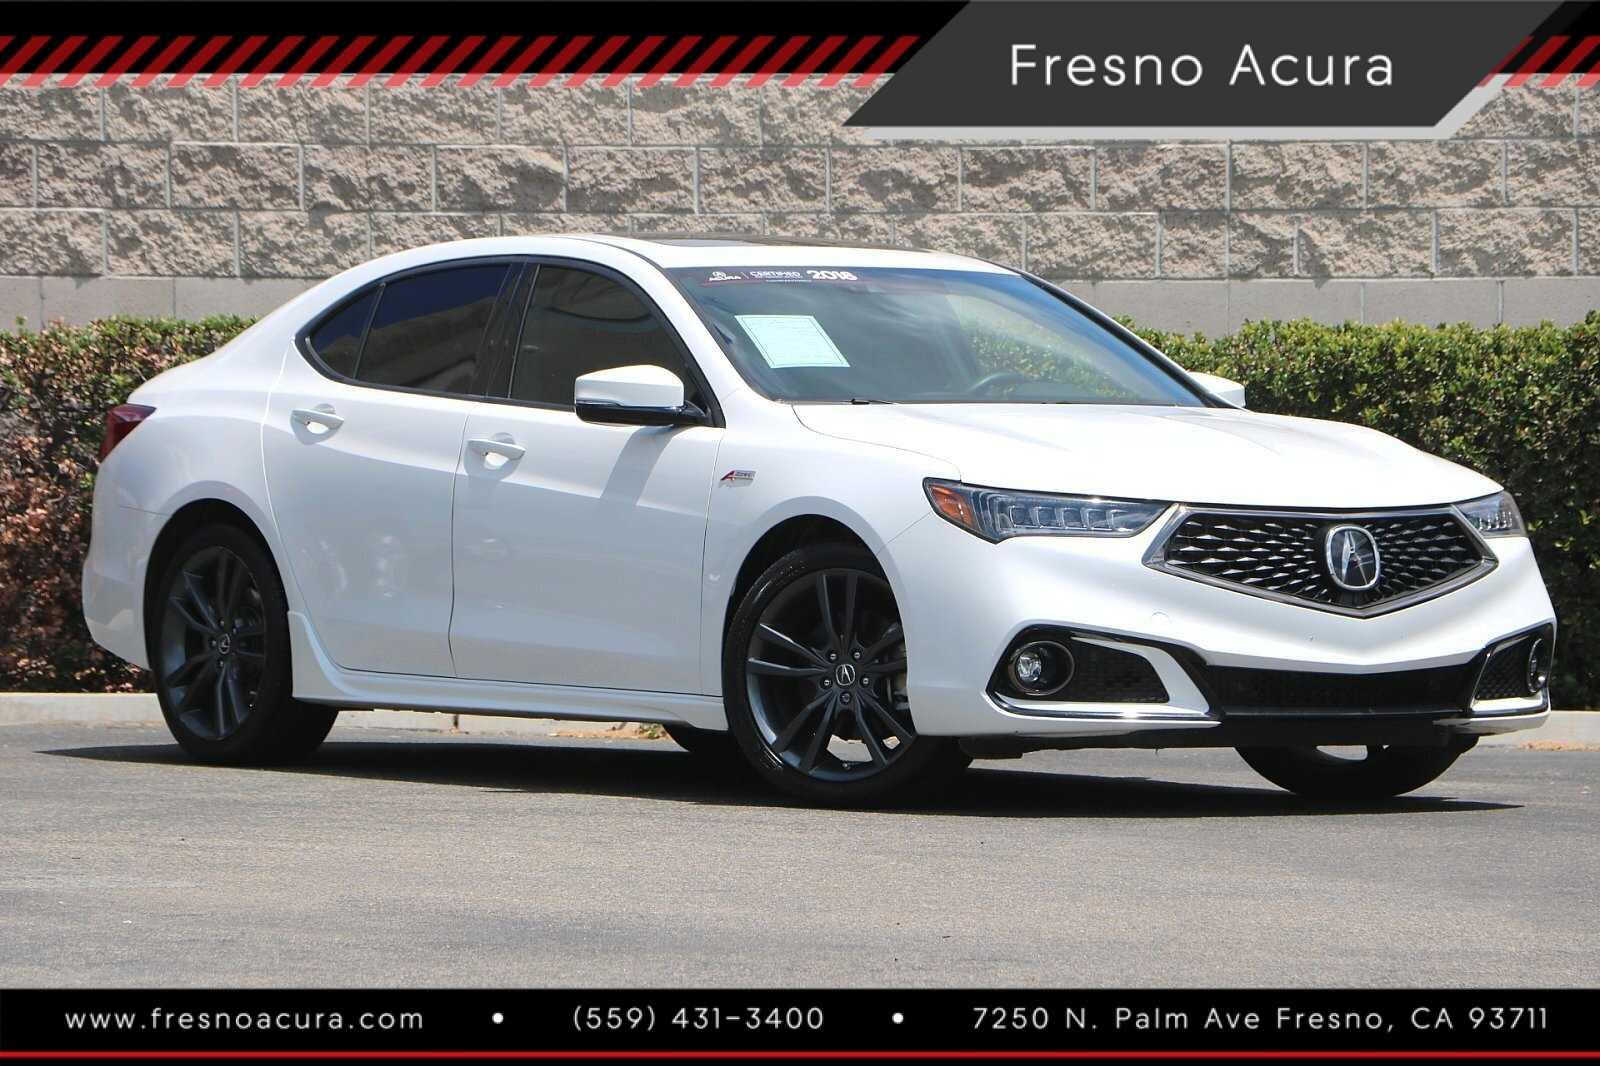 Certified Pre-Owned 2018 Acura TLX 3.5 V-6 9-AT SH-AWD with A-SPEC